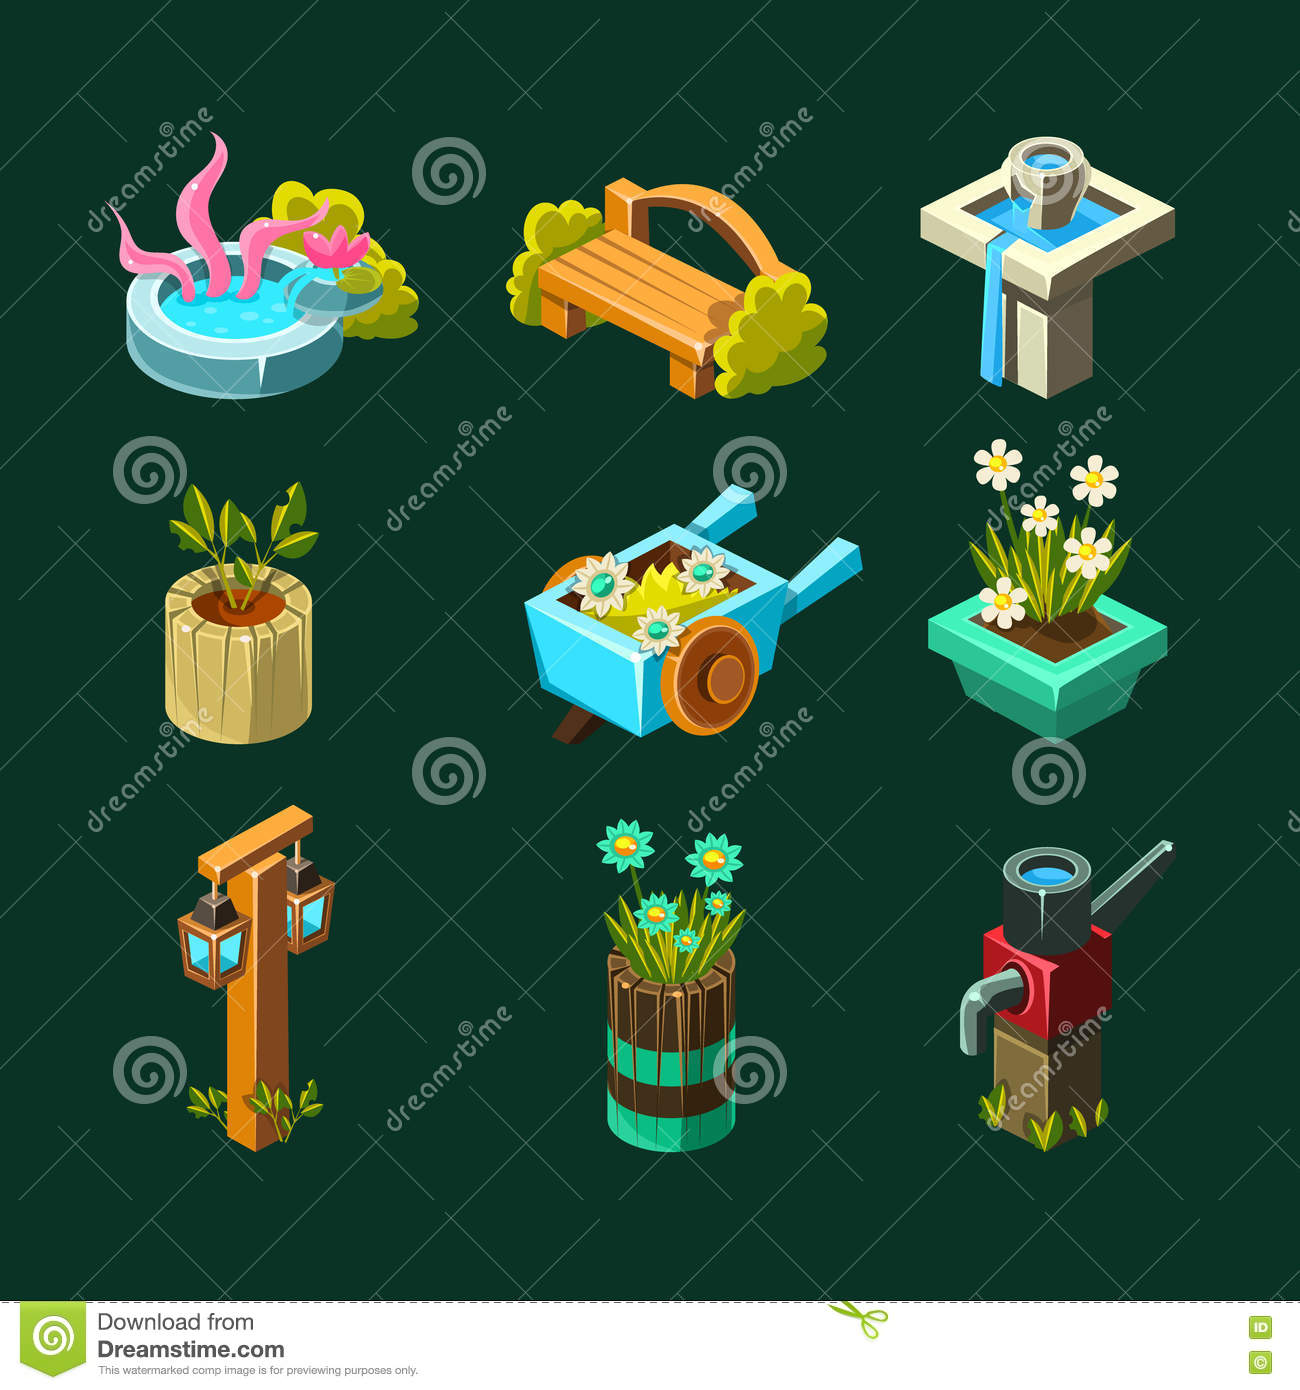 Garden Design Games Collection Video Game Garden Design Collection Of Elements Stock Vector .